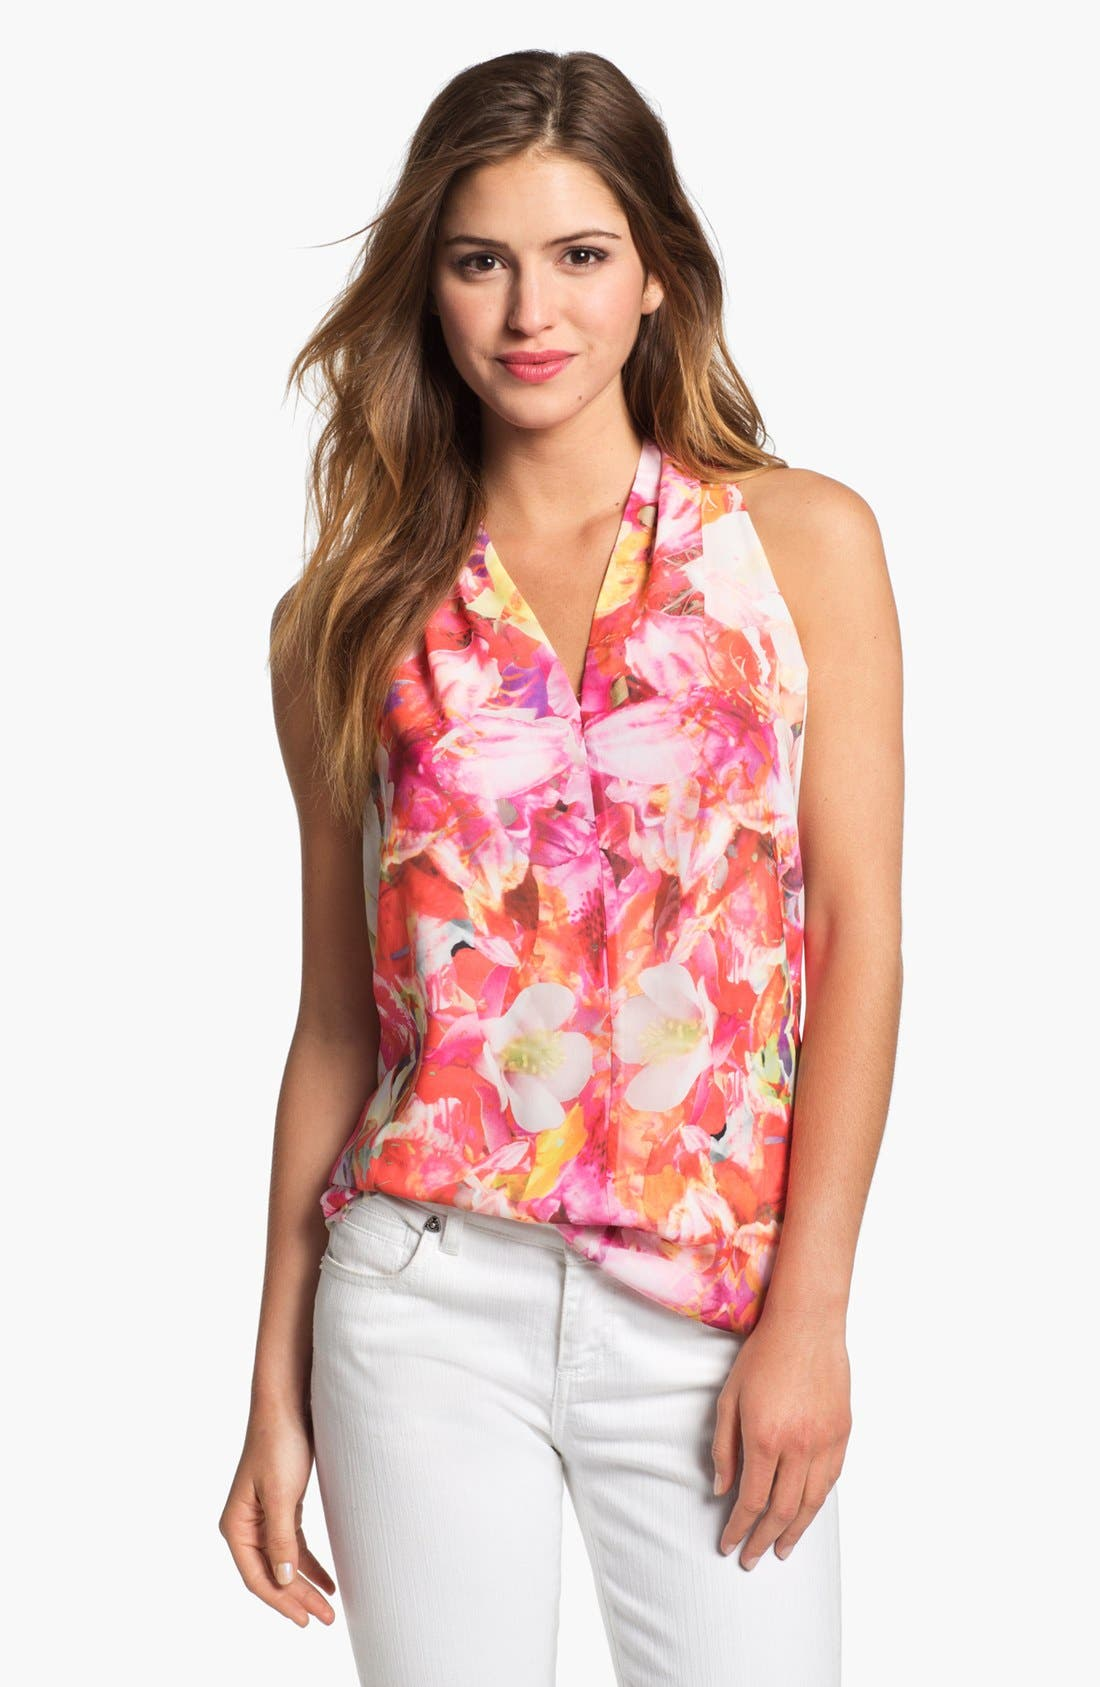 Main Image - Vince Camuto 'Corsage Floral' Sleeveless Blouse